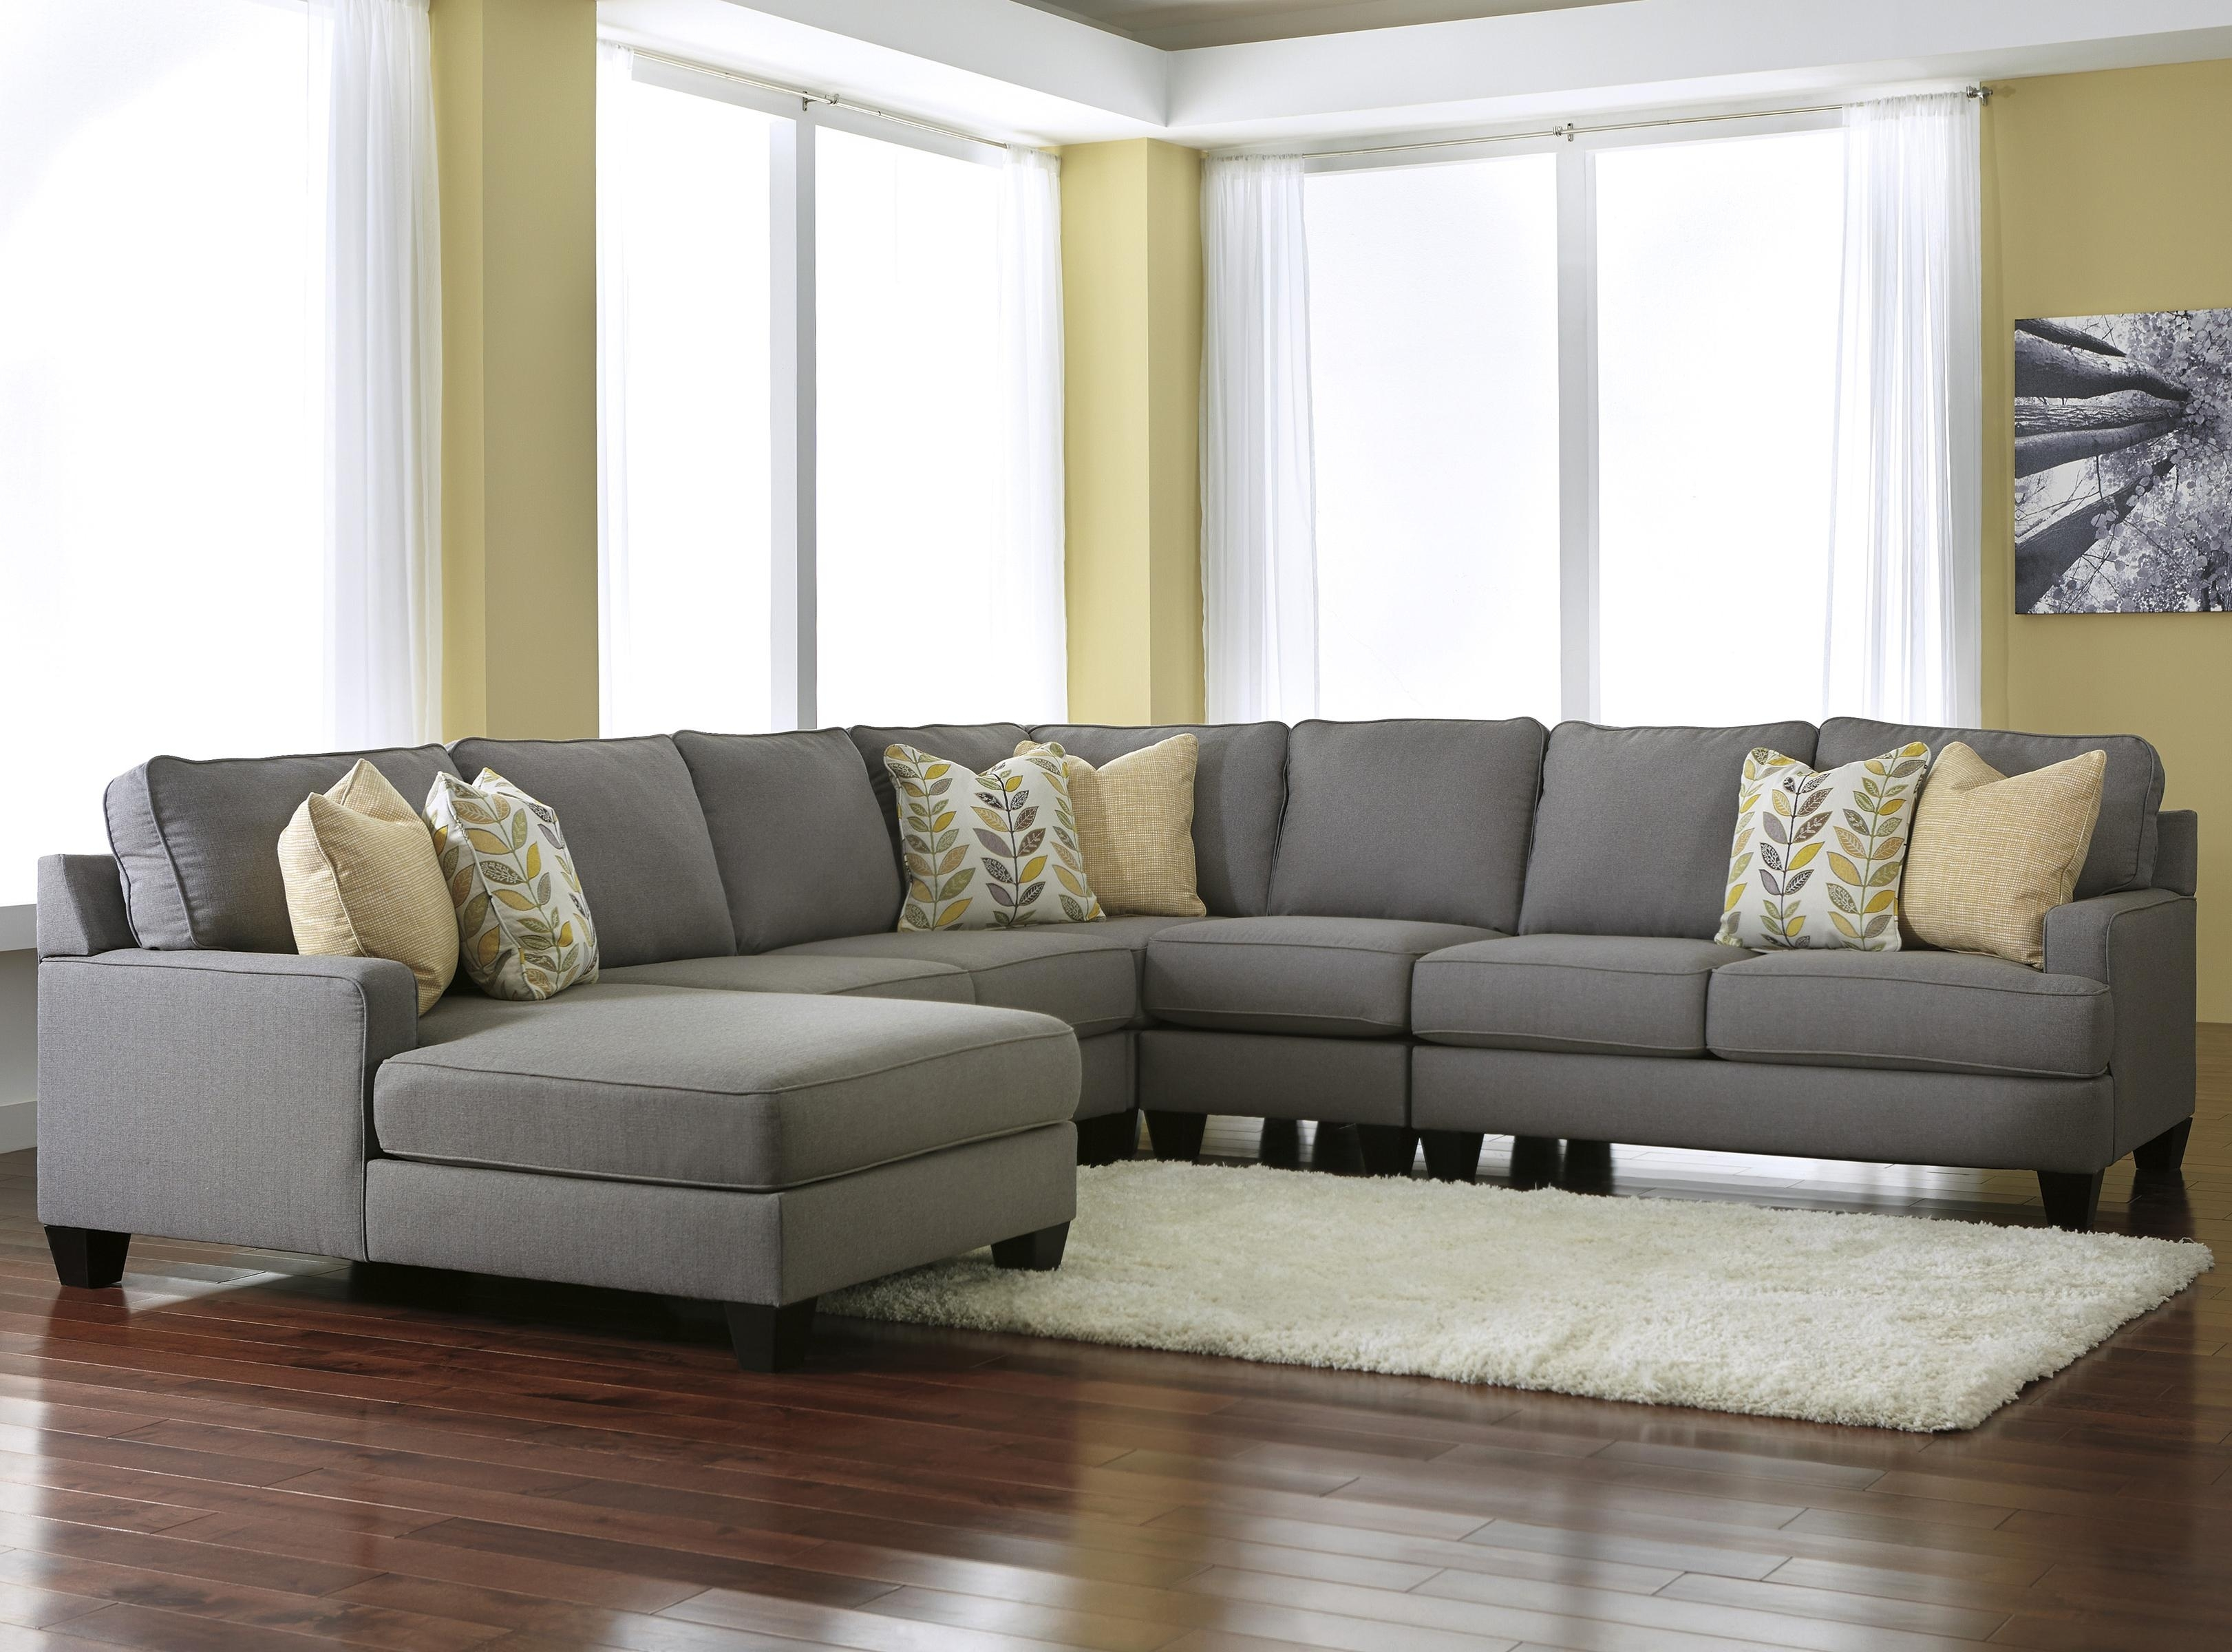 Signature Designashley Chamberly - Alloy Modern 5-Piece for Killeen Tx Sectional Sofas (Image 7 of 10)